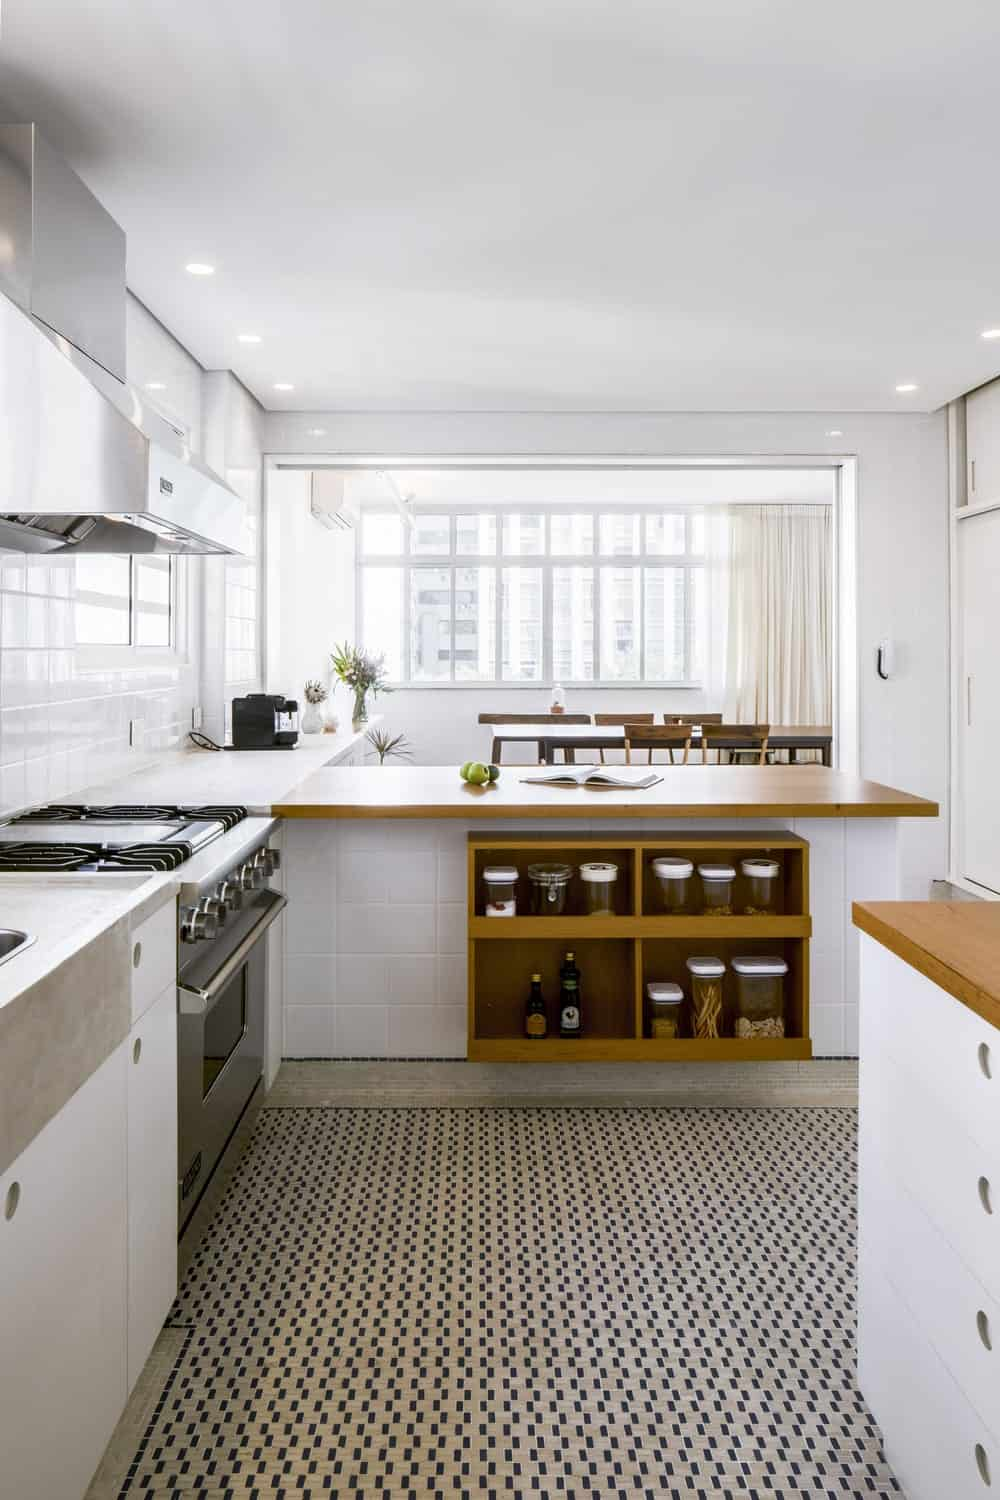 This is a look at the other side of the kitchen peninsula with built-in shelves that match the tone of the woodtop counters complemented by the bright white tones.